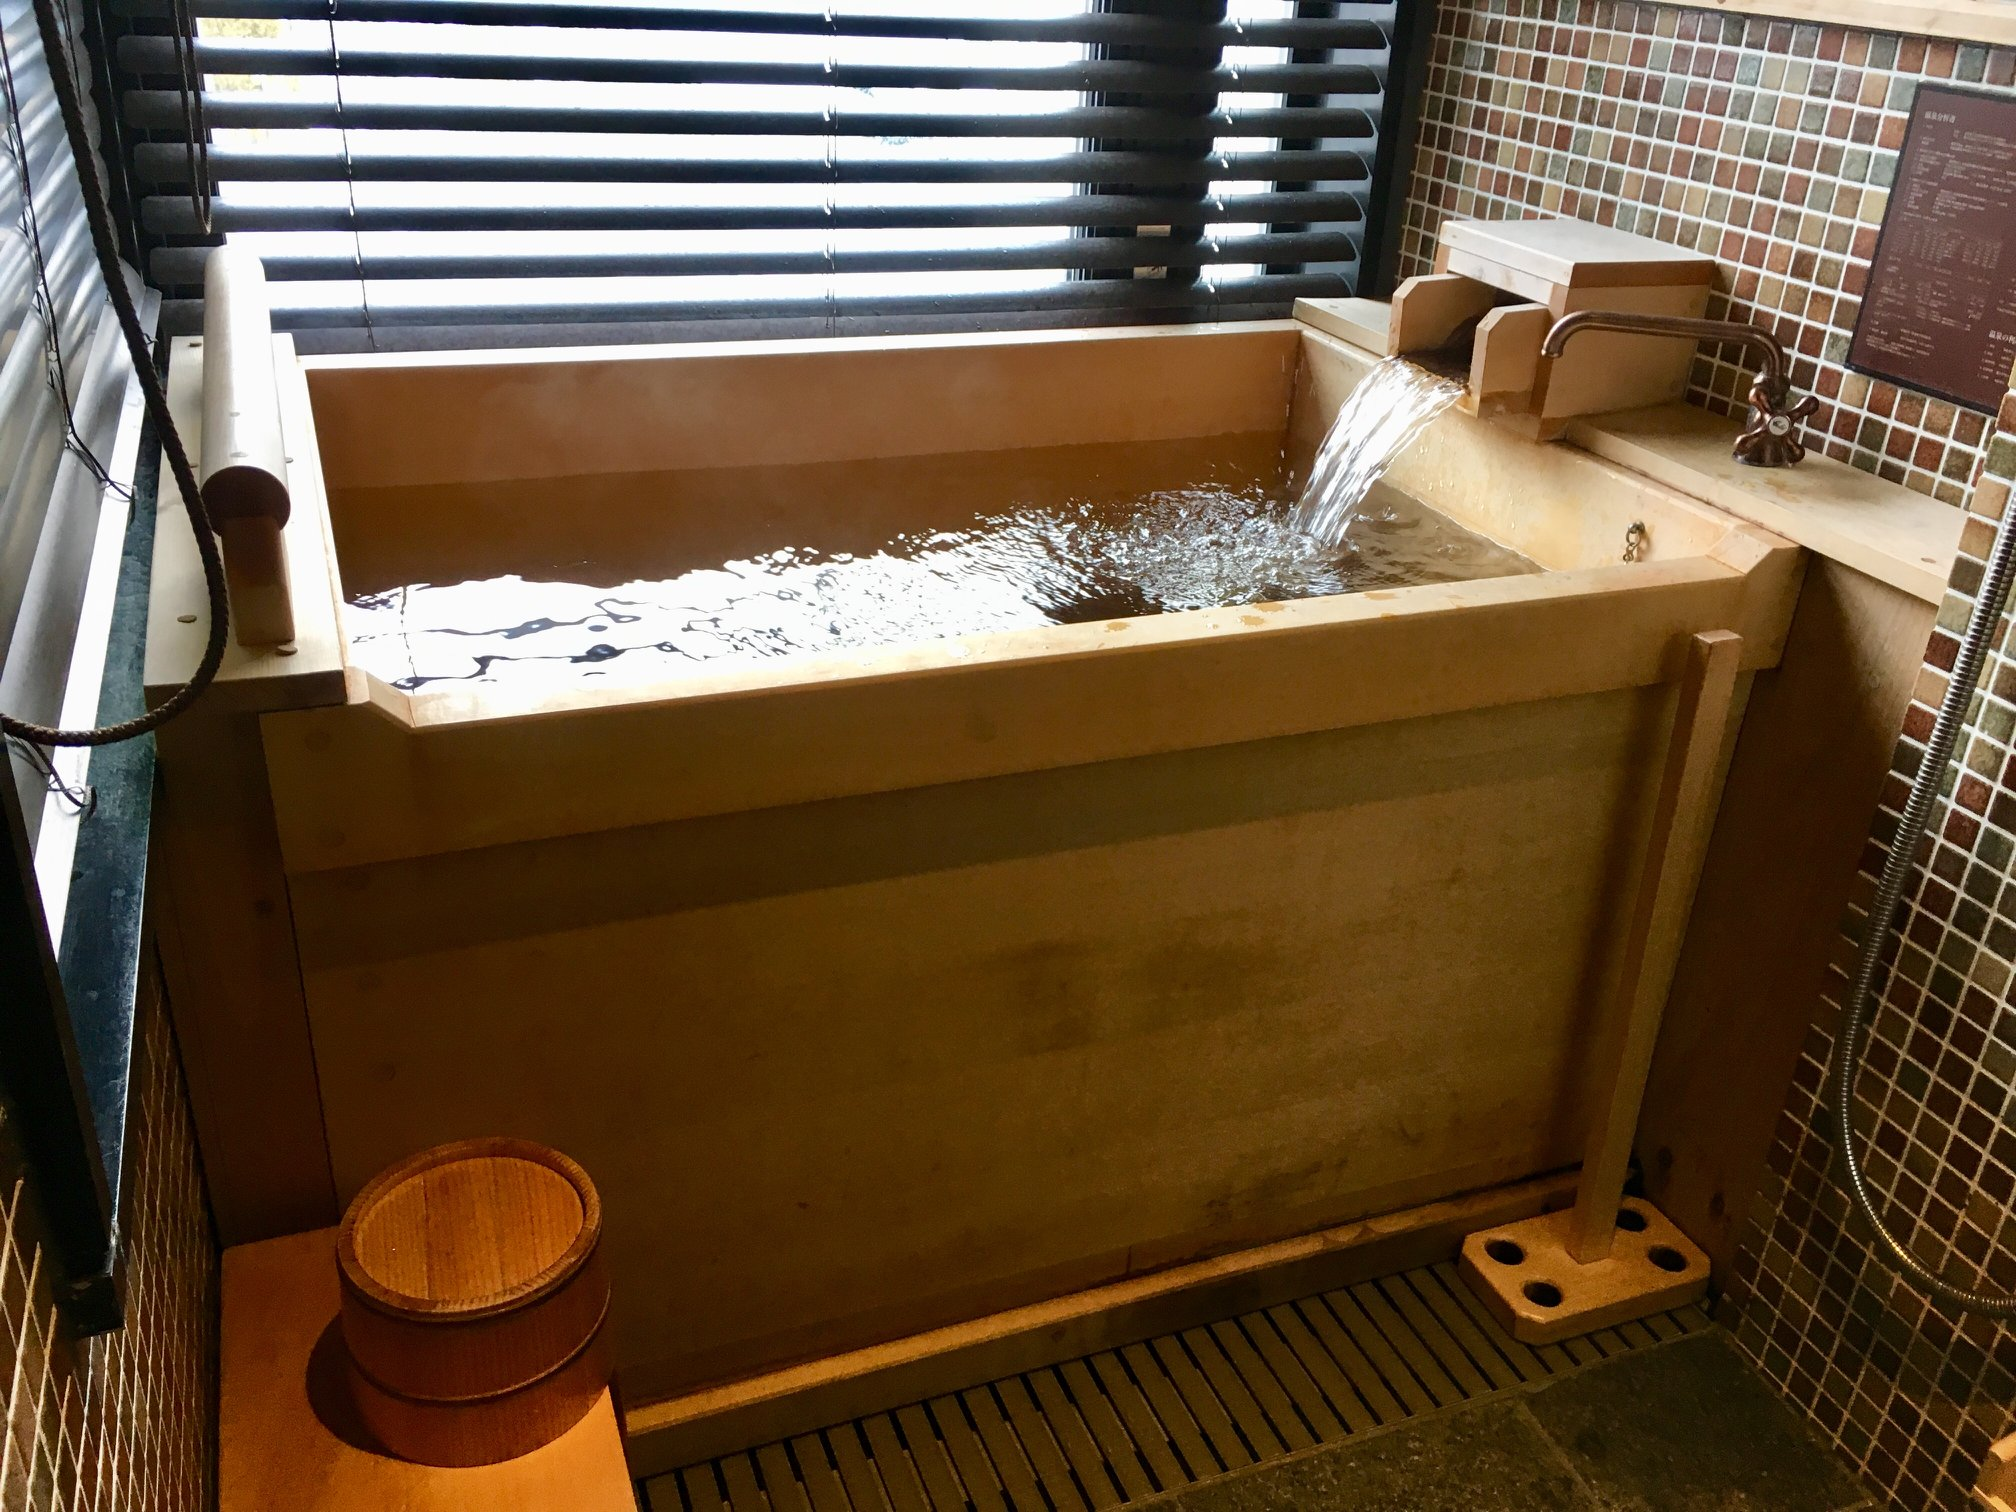 The cypress-wood bath in our room. Glorious.